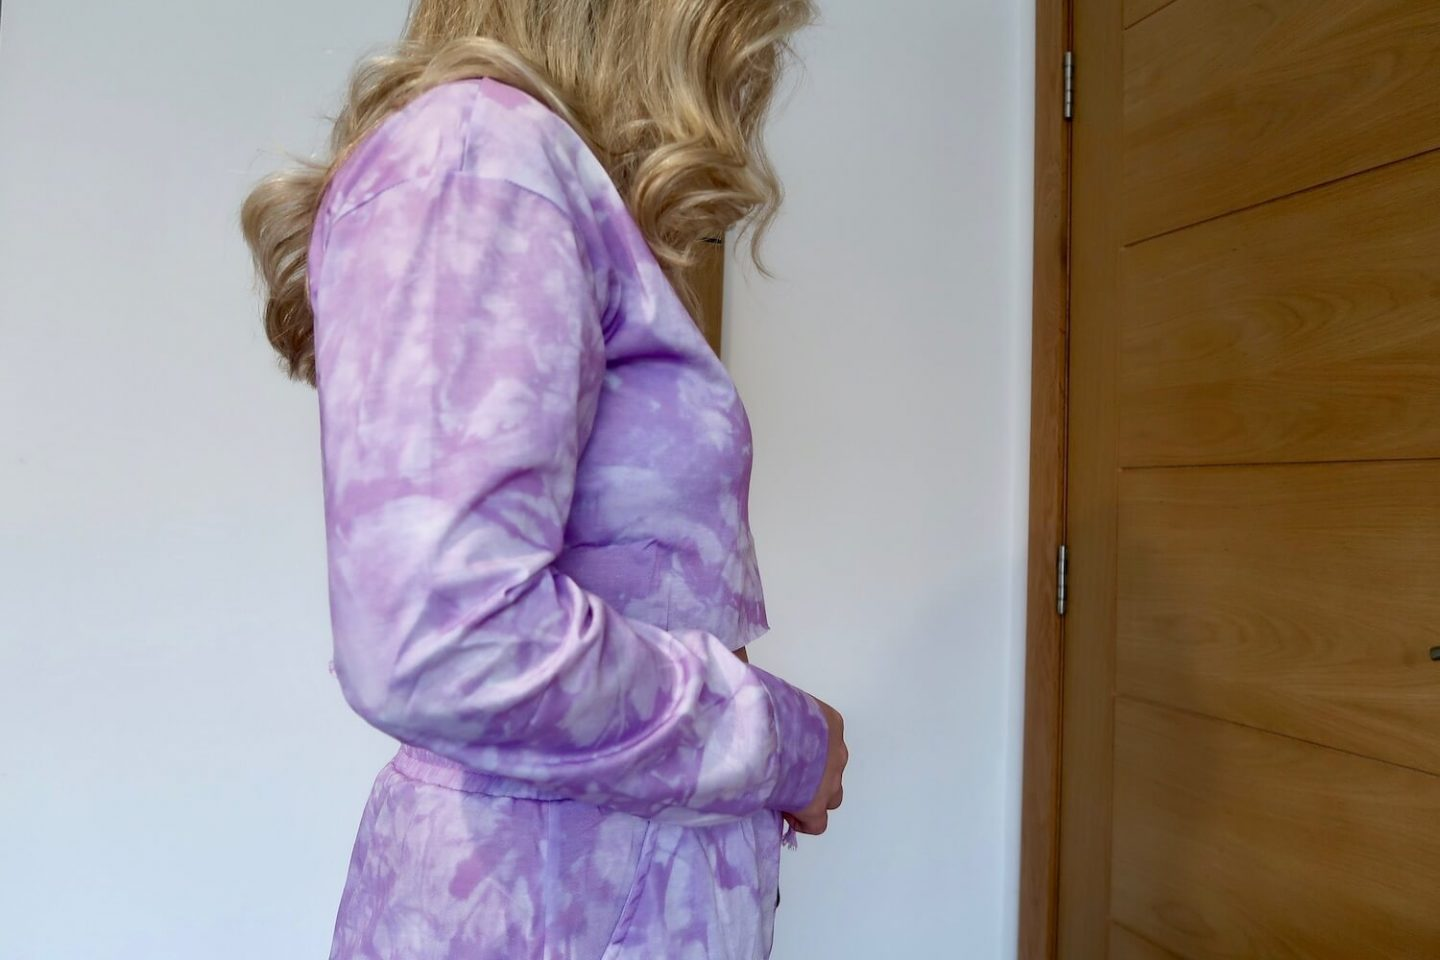 A side view of the torso of a woman wearing a purple and white tie dyed loungewear set